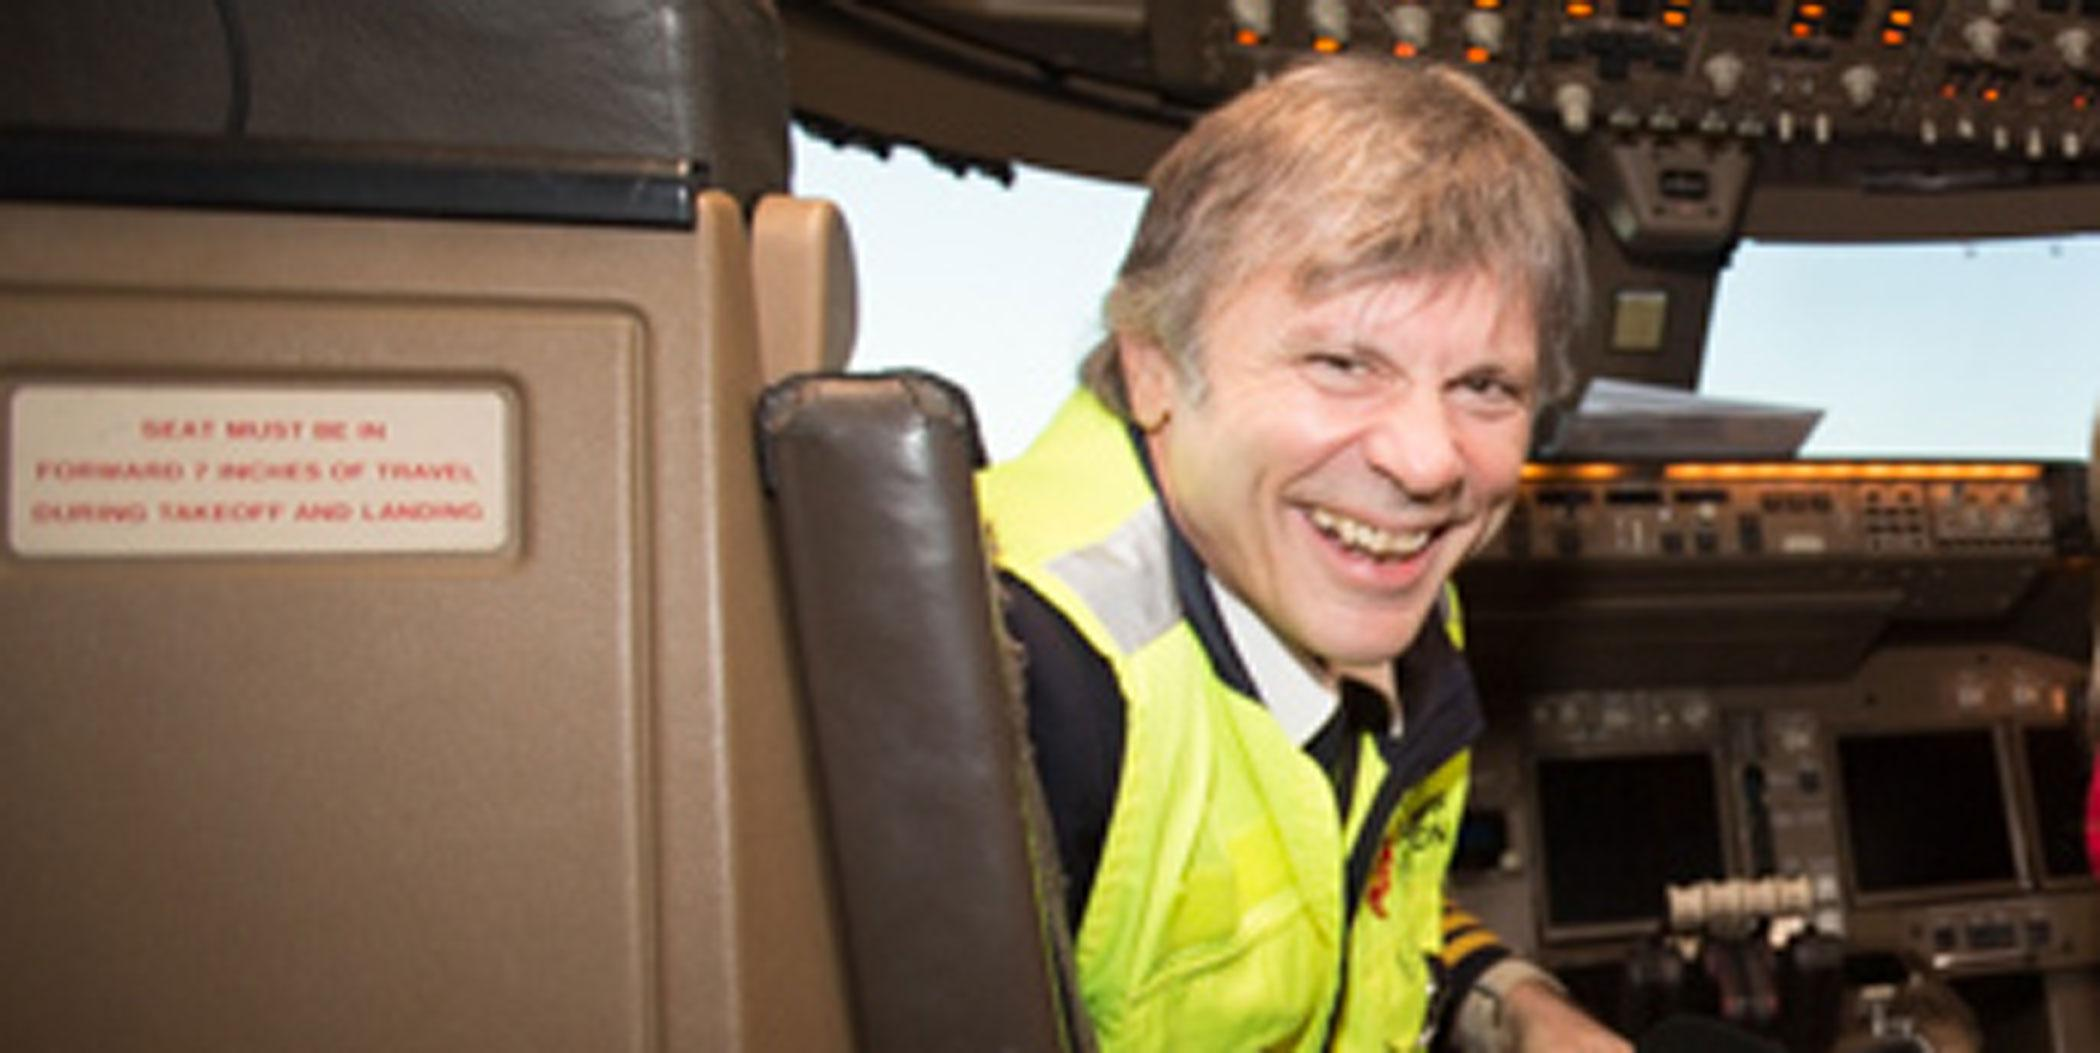 Bruce Dickinson, rock star (Iron Maiden) and pilot (Photo: Carol Moir)